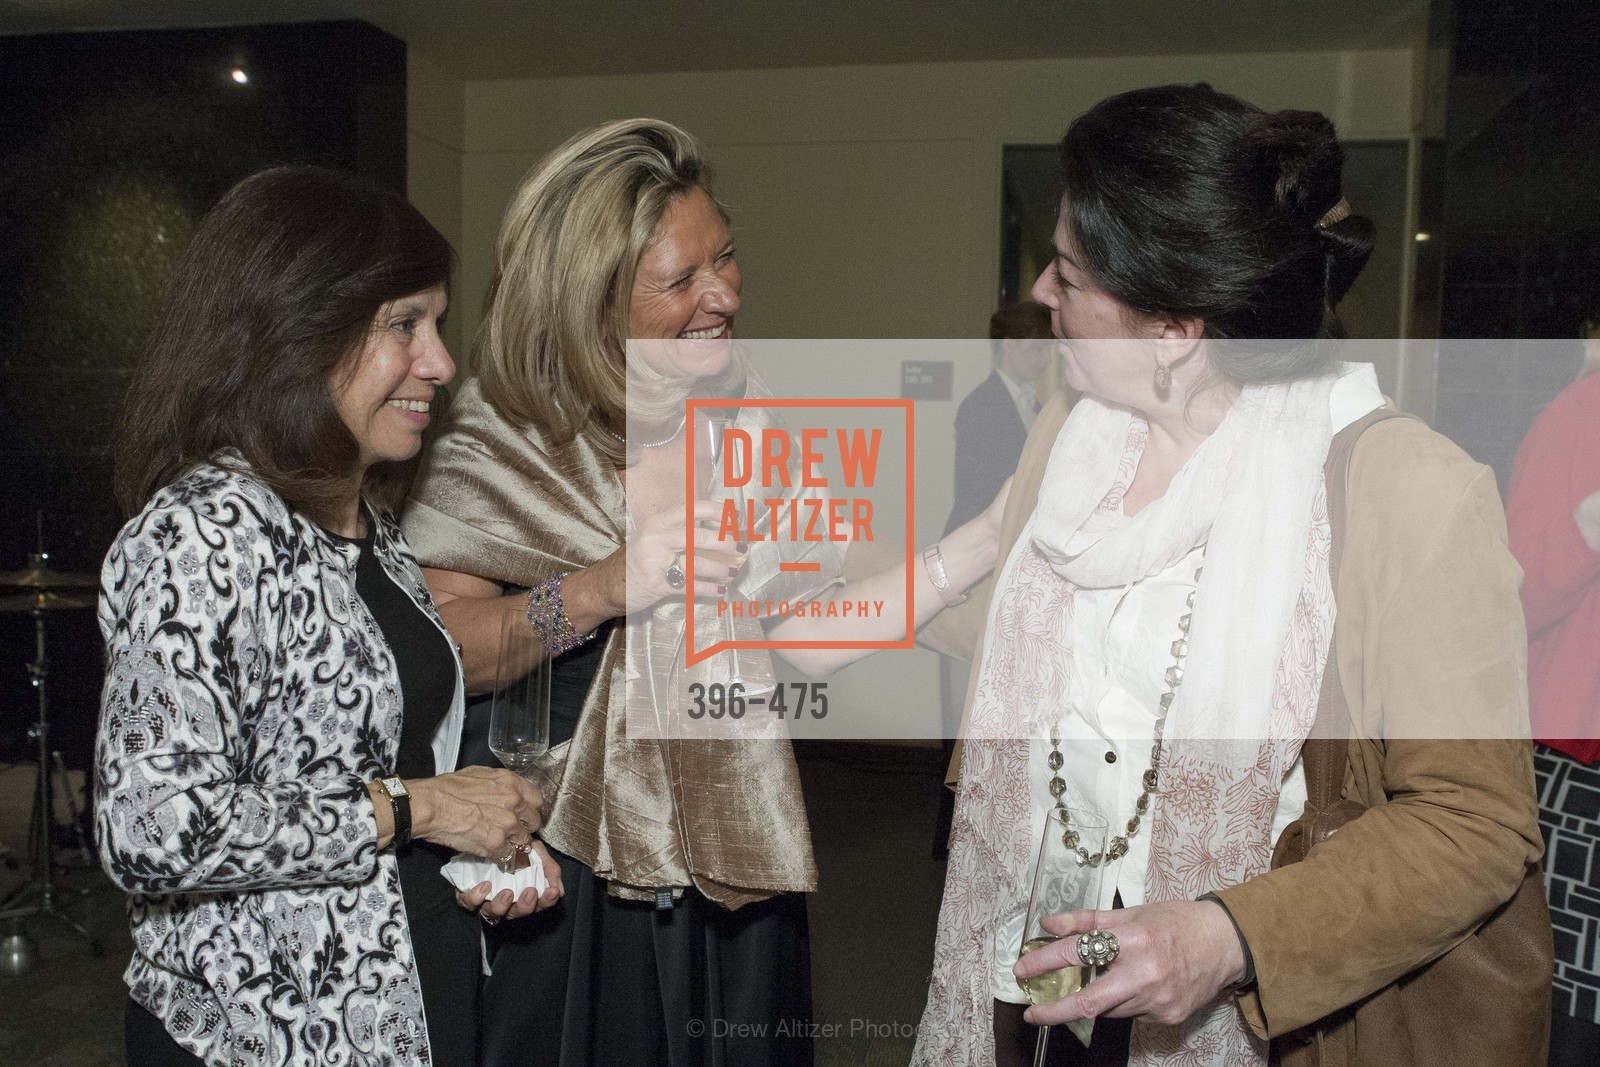 Margot Harrigan, Florence Buatois, Maggie Dinno, RED CROSS Pre-Gala Champagne Reception, US. Stephen Silver Fine Jewelry, 2055 Woodside Road, Redwood City, CA 94061, January 22nd, 2014,Drew Altizer, Drew Altizer Photography, full-service agency, private events, San Francisco photographer, photographer california